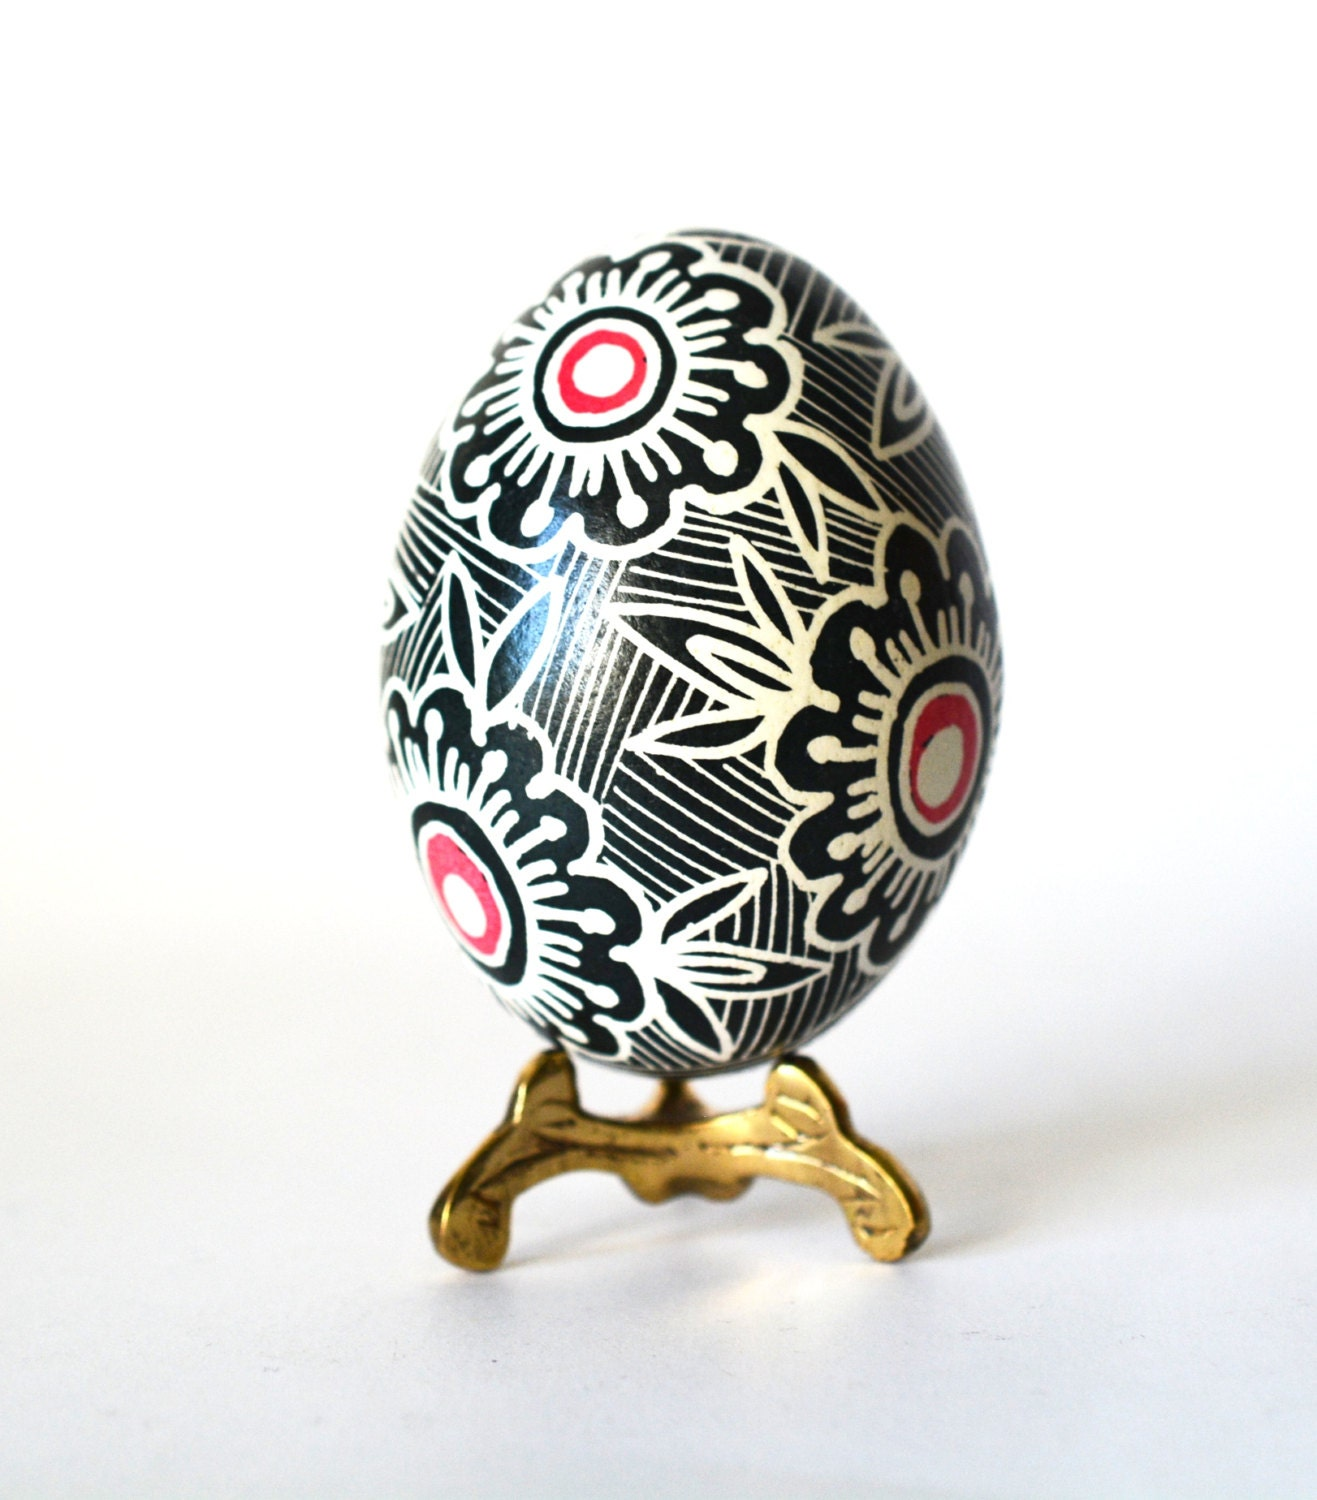 Black And White Whimsical Home Decor By Ukrainianeastereggs